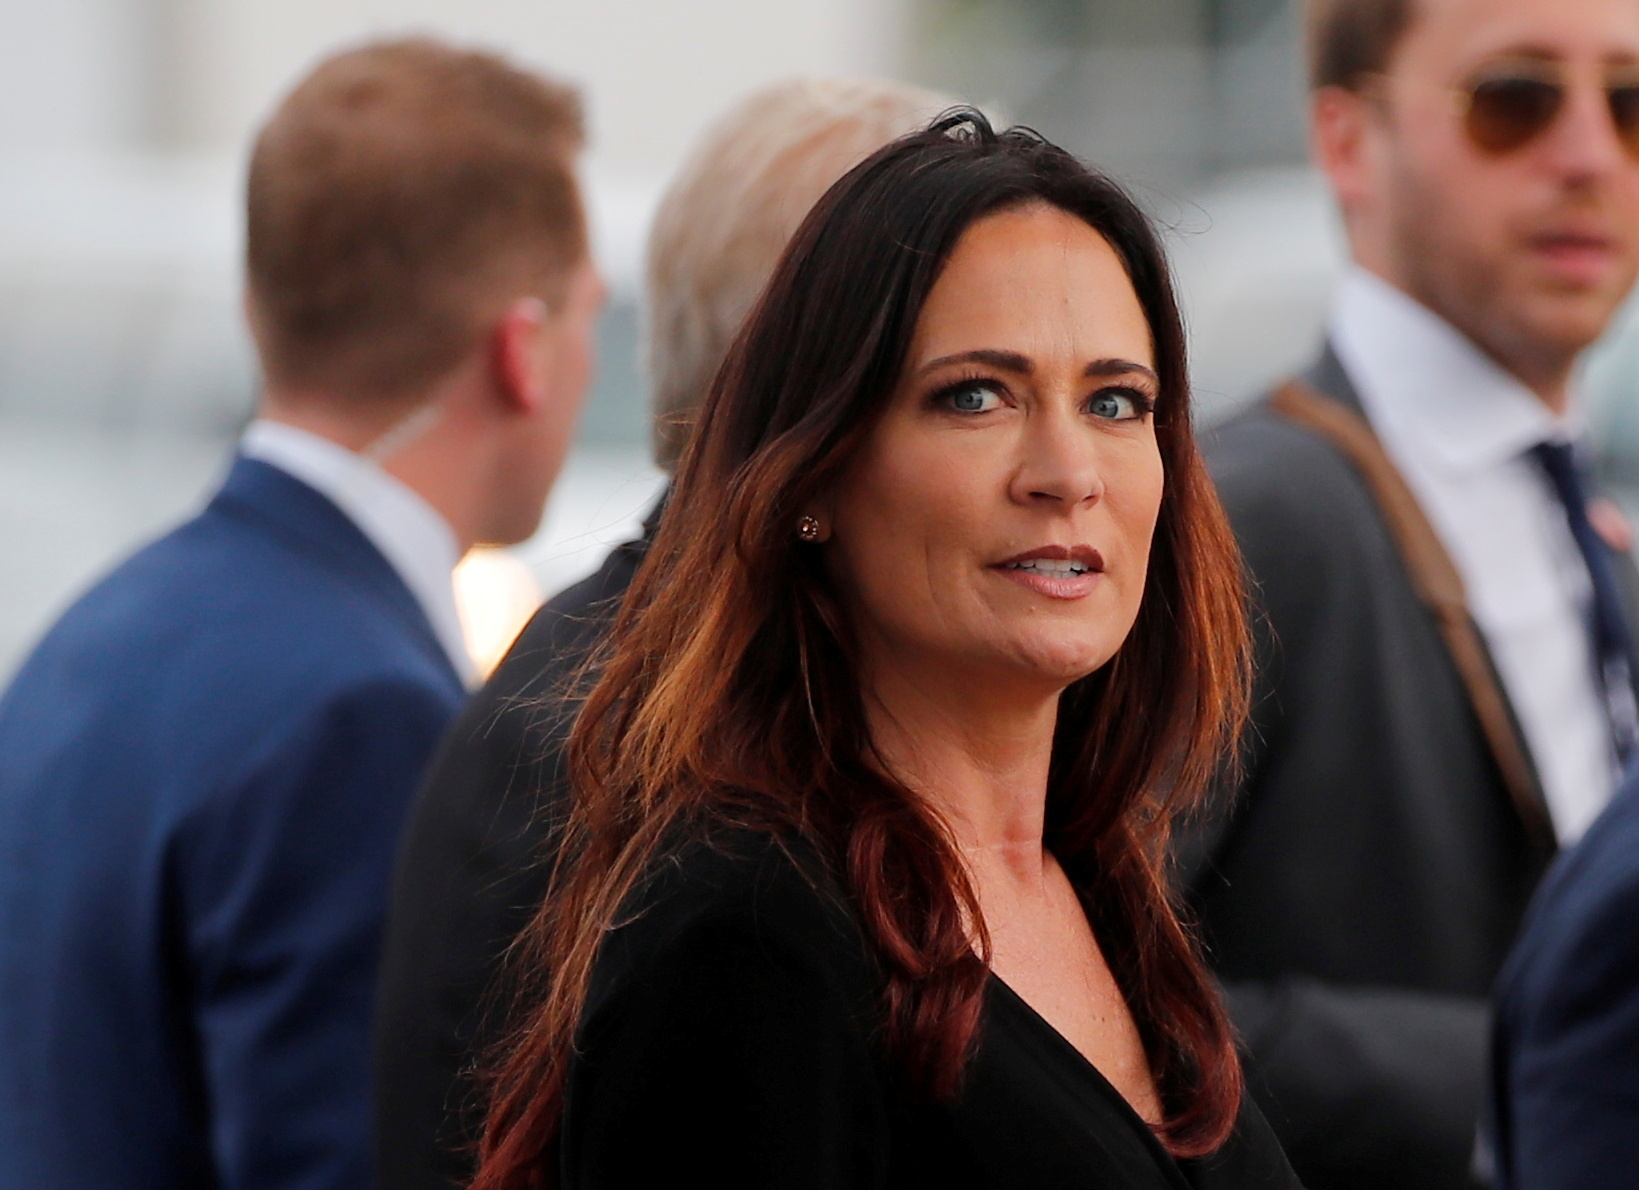 Stephanie Grisham, spokesperson for first lady Melania Trump, arrives for a campaign rally with U.S. President Donald Trump in Orlando, Florida, U.S., June 18, 2019. Picture taken June 18, 2019. REUTERS/Carlos Barria